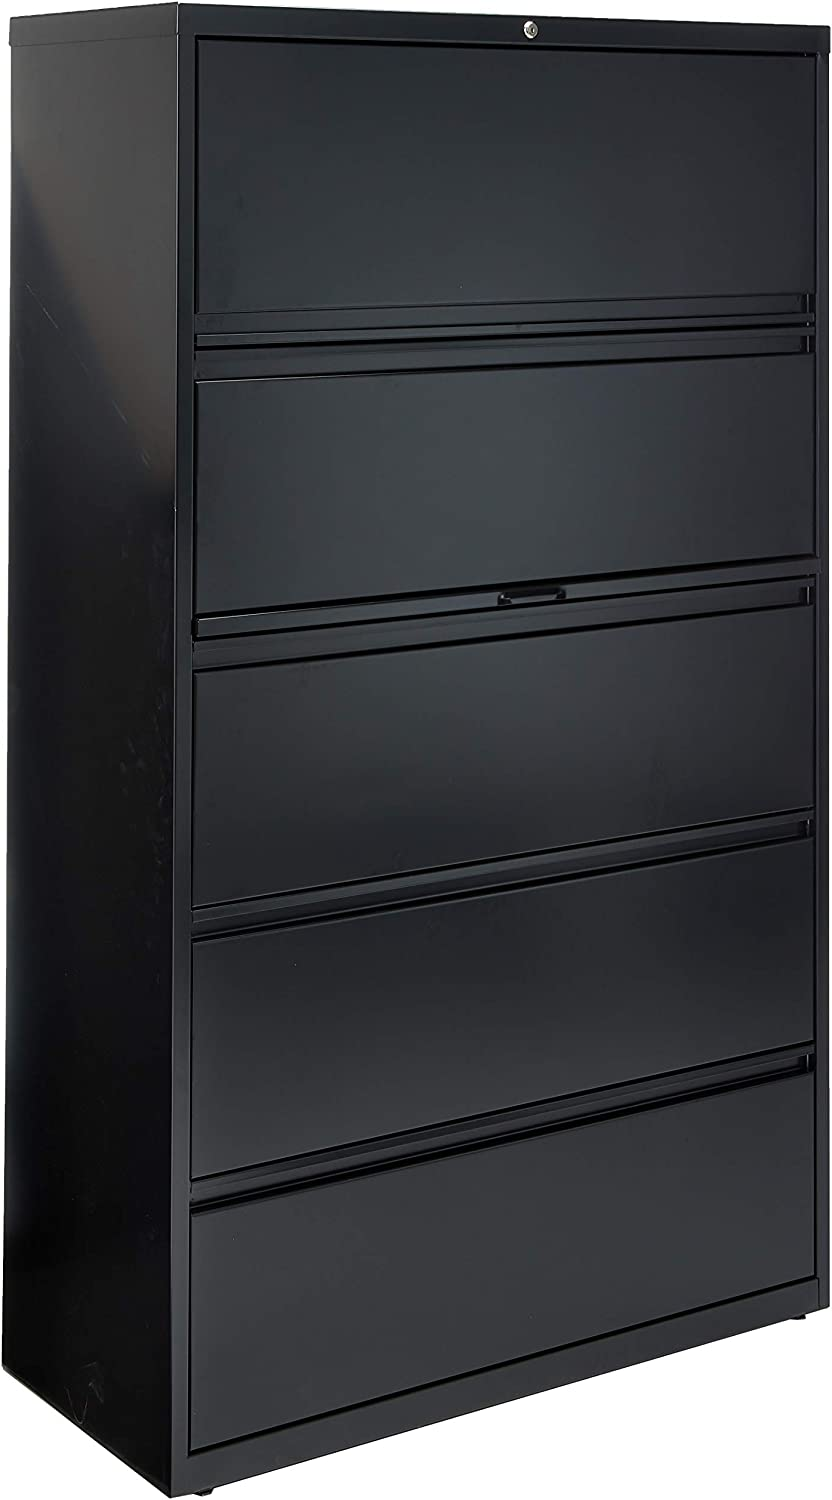 Amazon Com Lorell 5 Drawer Lateral File 42 By 18 5 8 By 67 11 16 Inch Black Home Kitchen